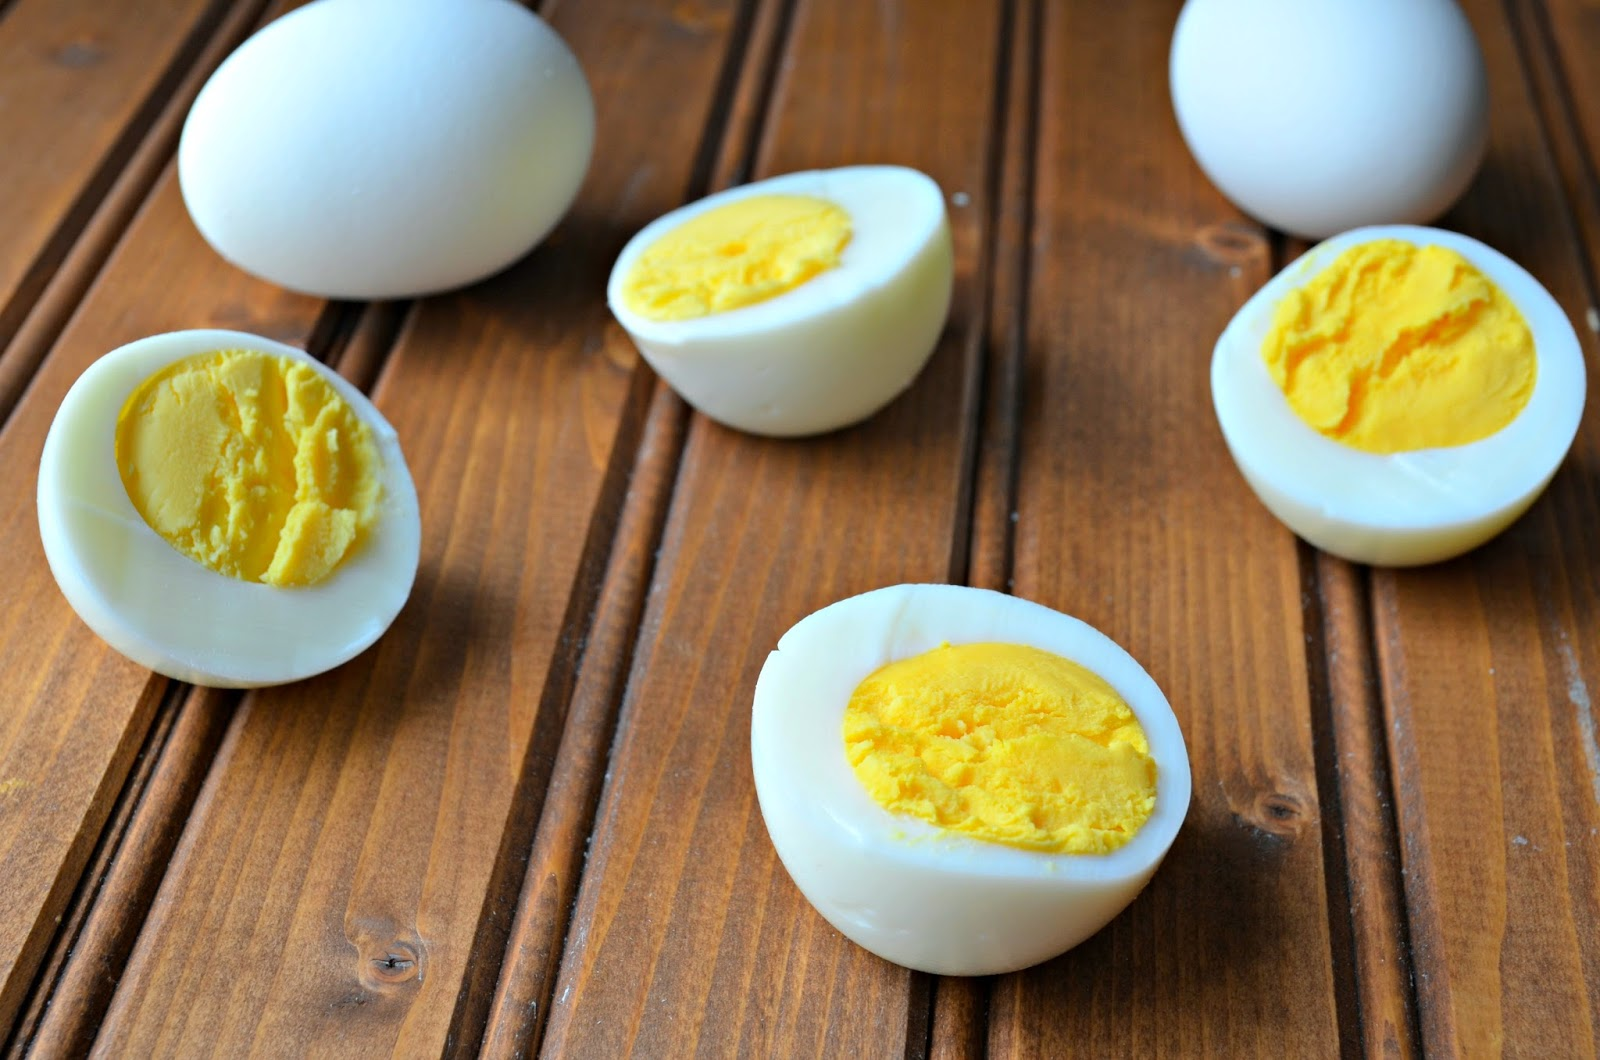 The Savvy Kitchen: How To: Boil the Perfect Hard-Boiled Egg